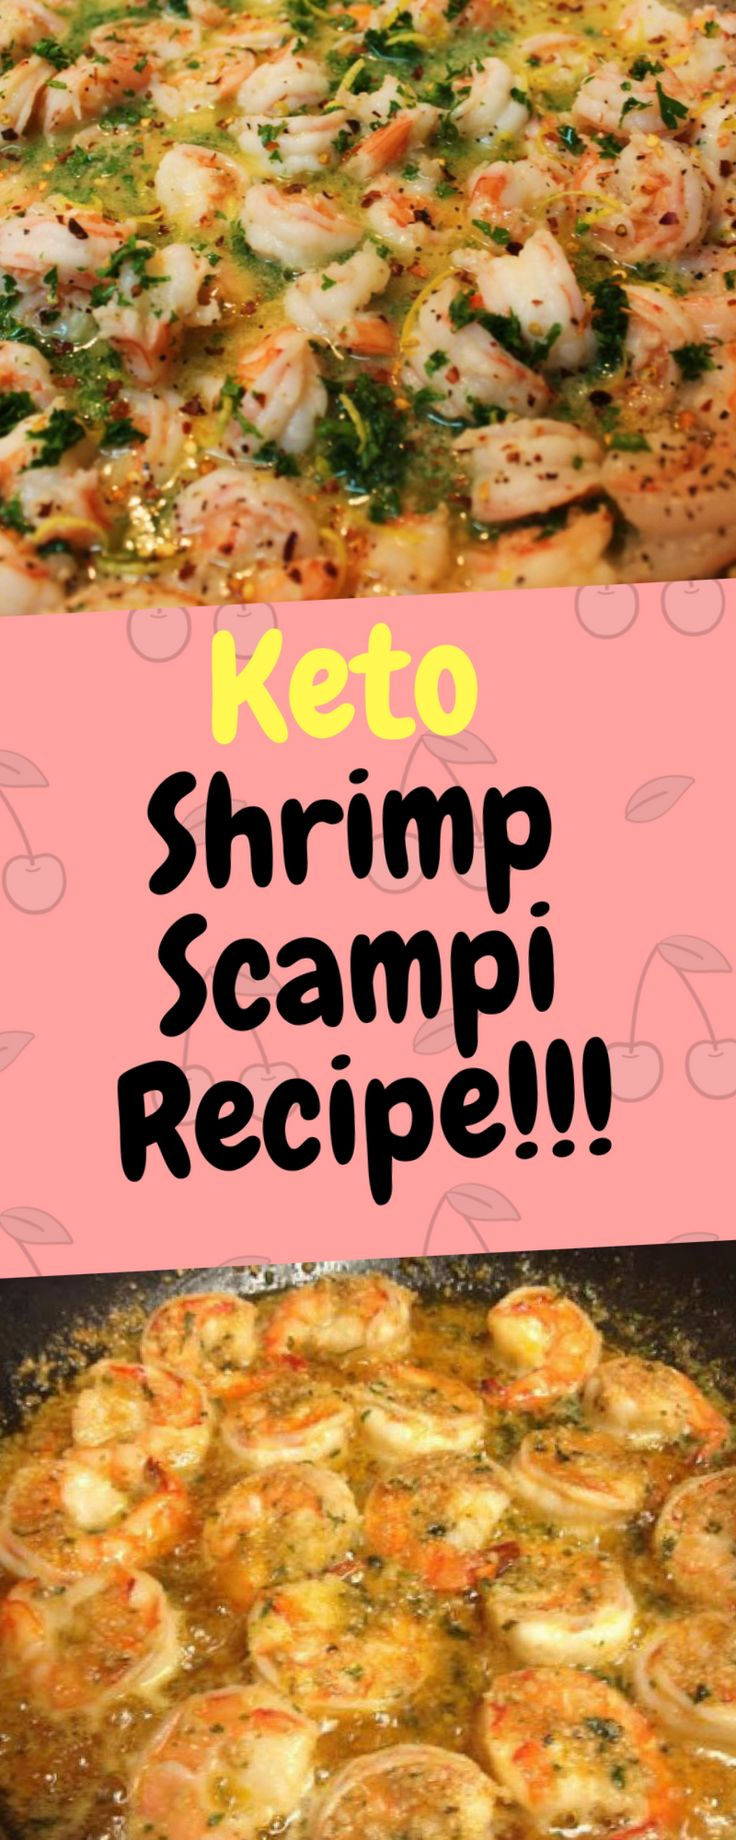 Easy Keto Creamy Shrimp Scampi from your instant pot or pressure cooker, this on…